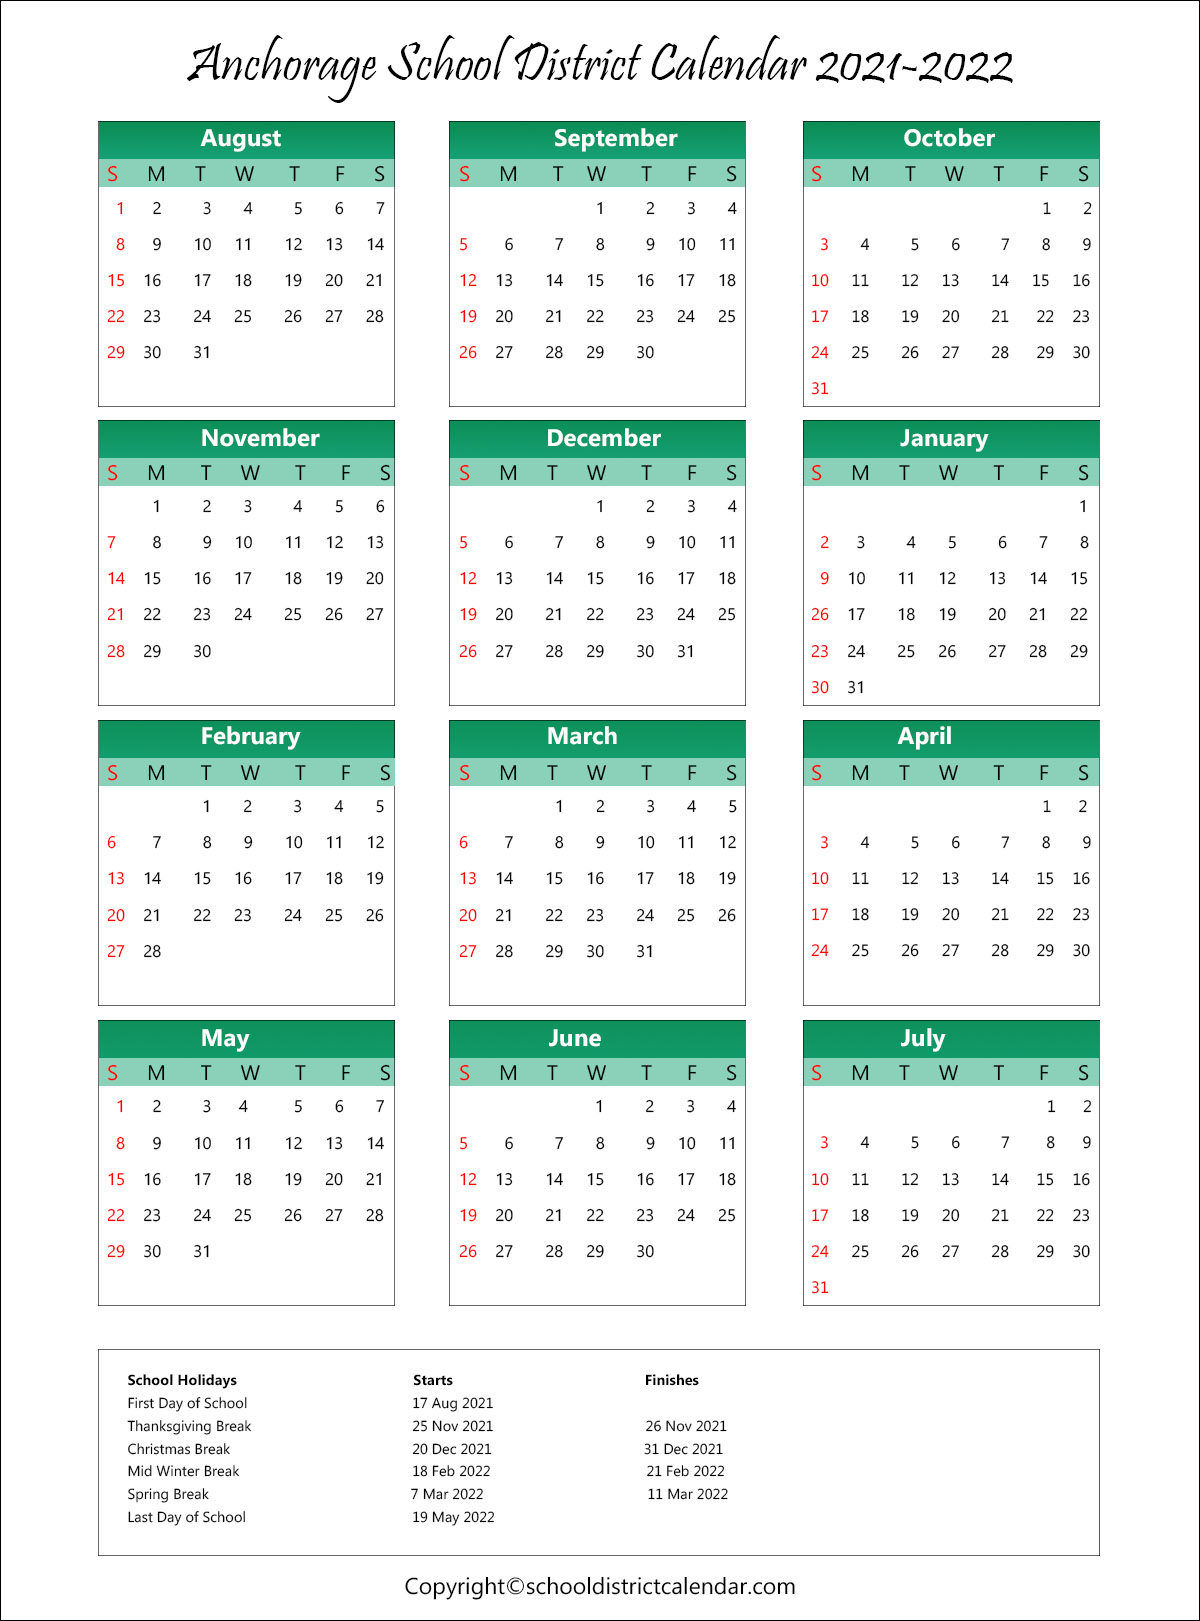 Anchorage School District Calendar 2021-22